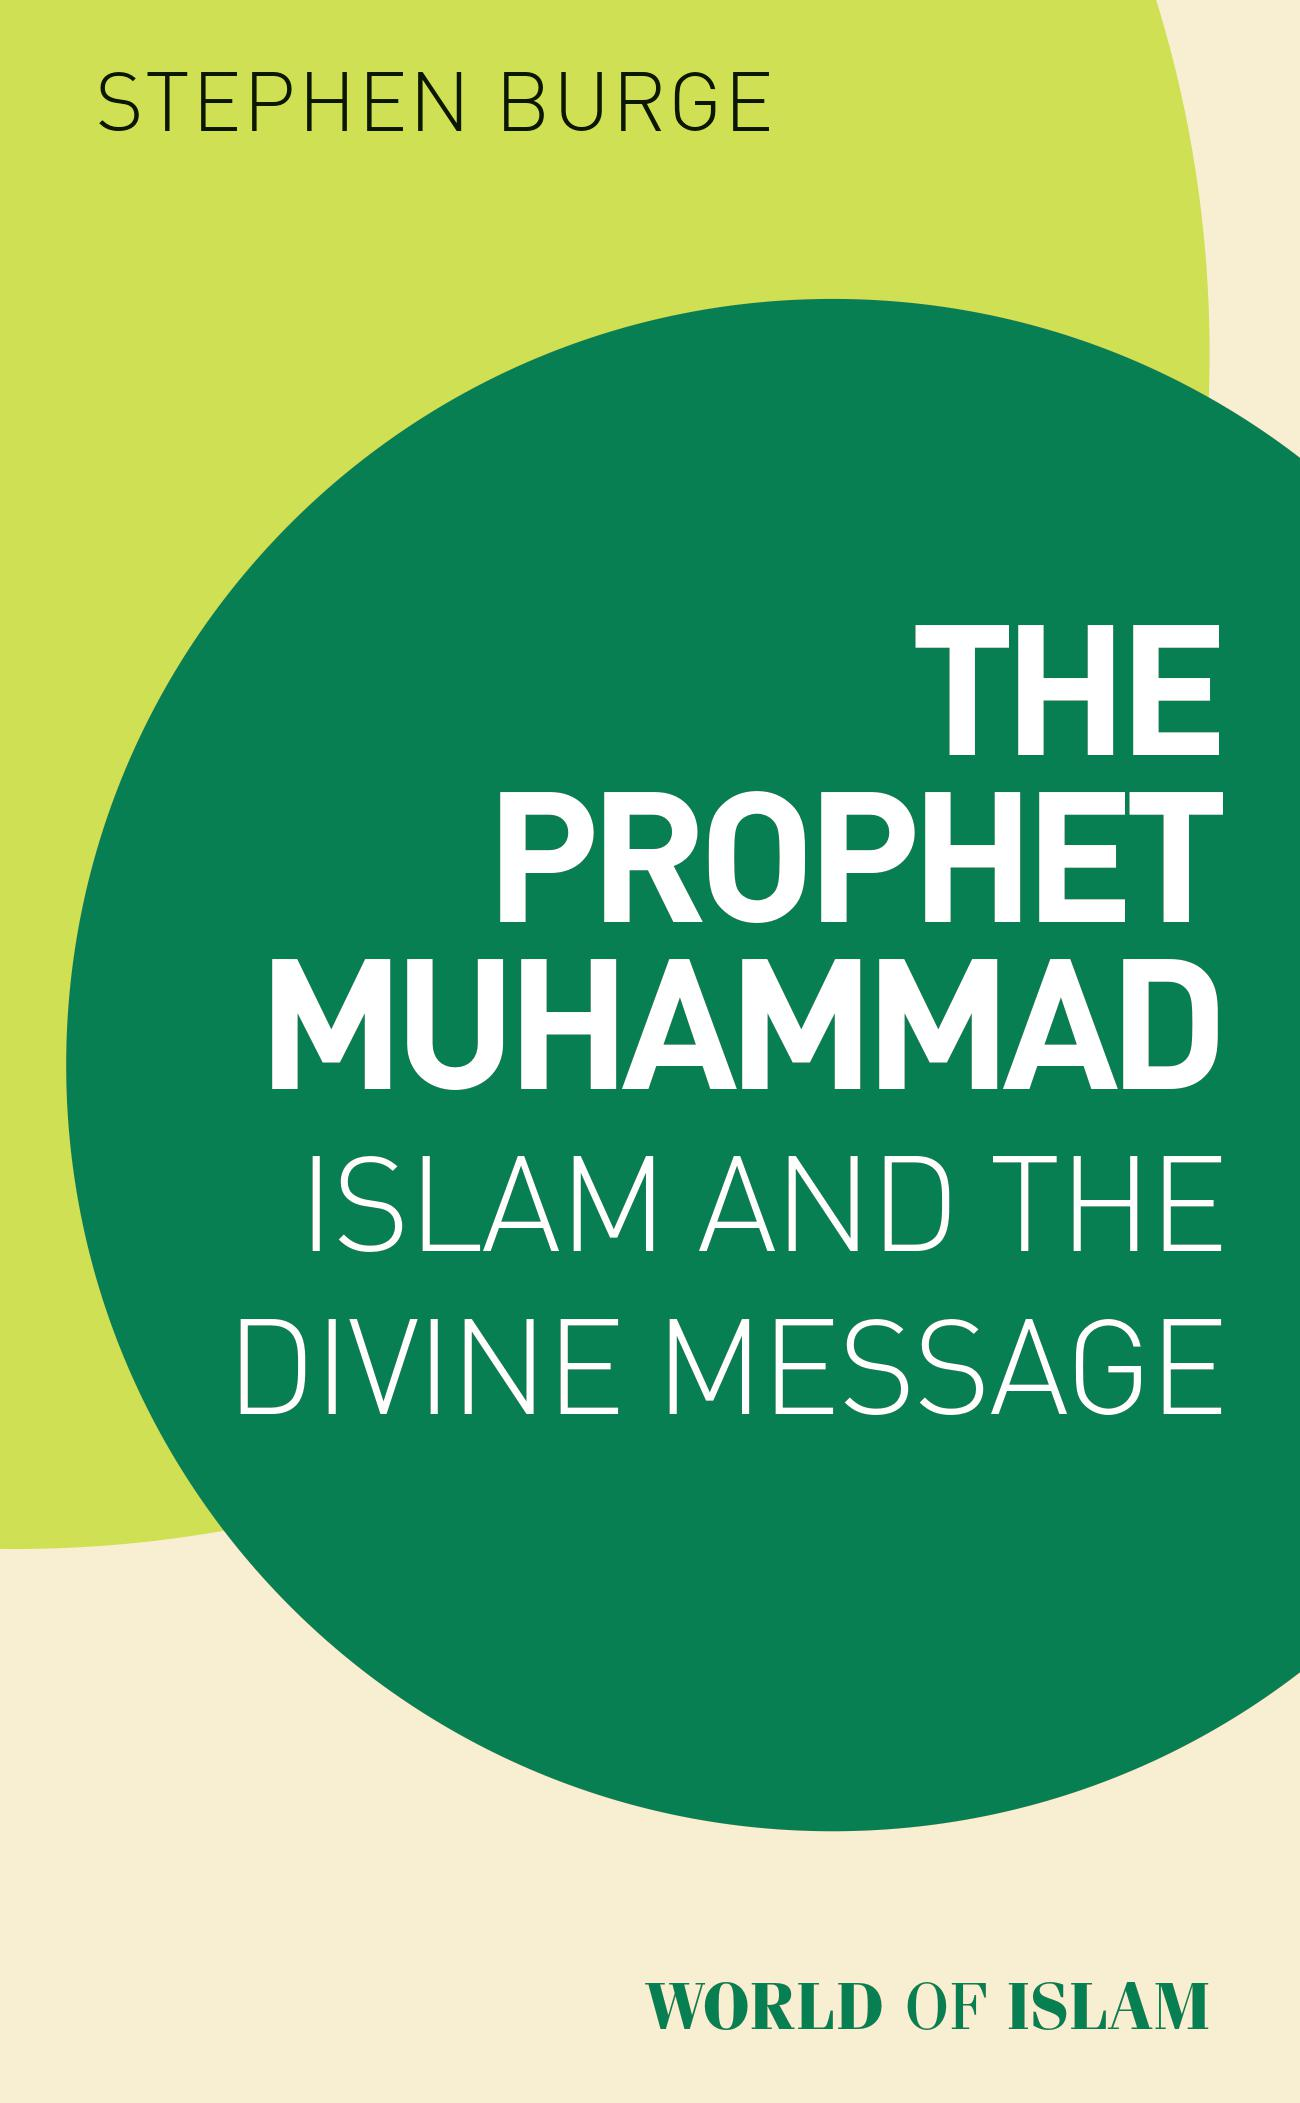 The Prophet Muhammad: Islam and the Divine Message by Stephen Burge